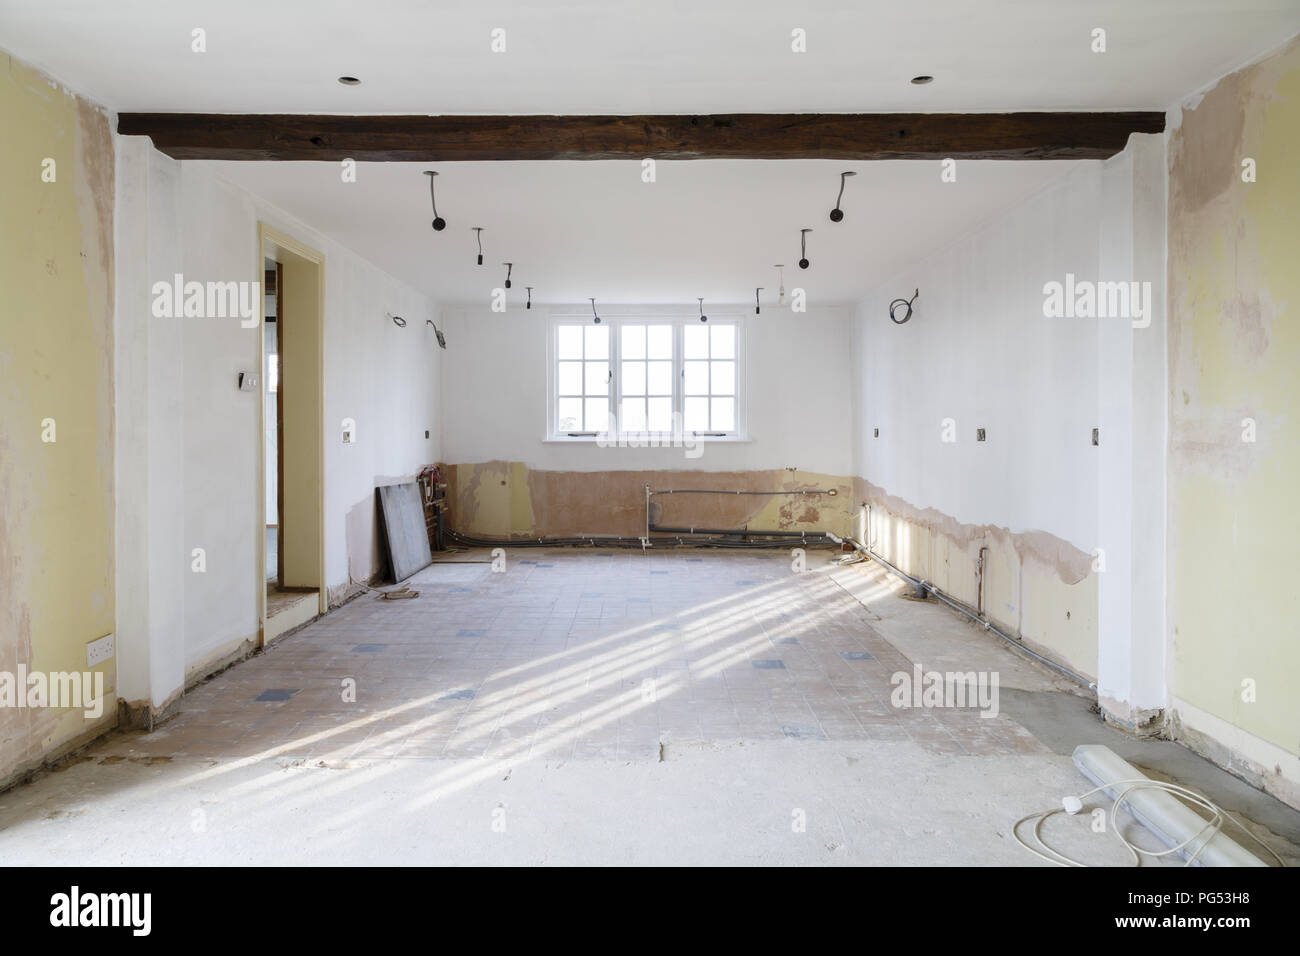 Empty Room In An Old House Undergoing Refurbishment